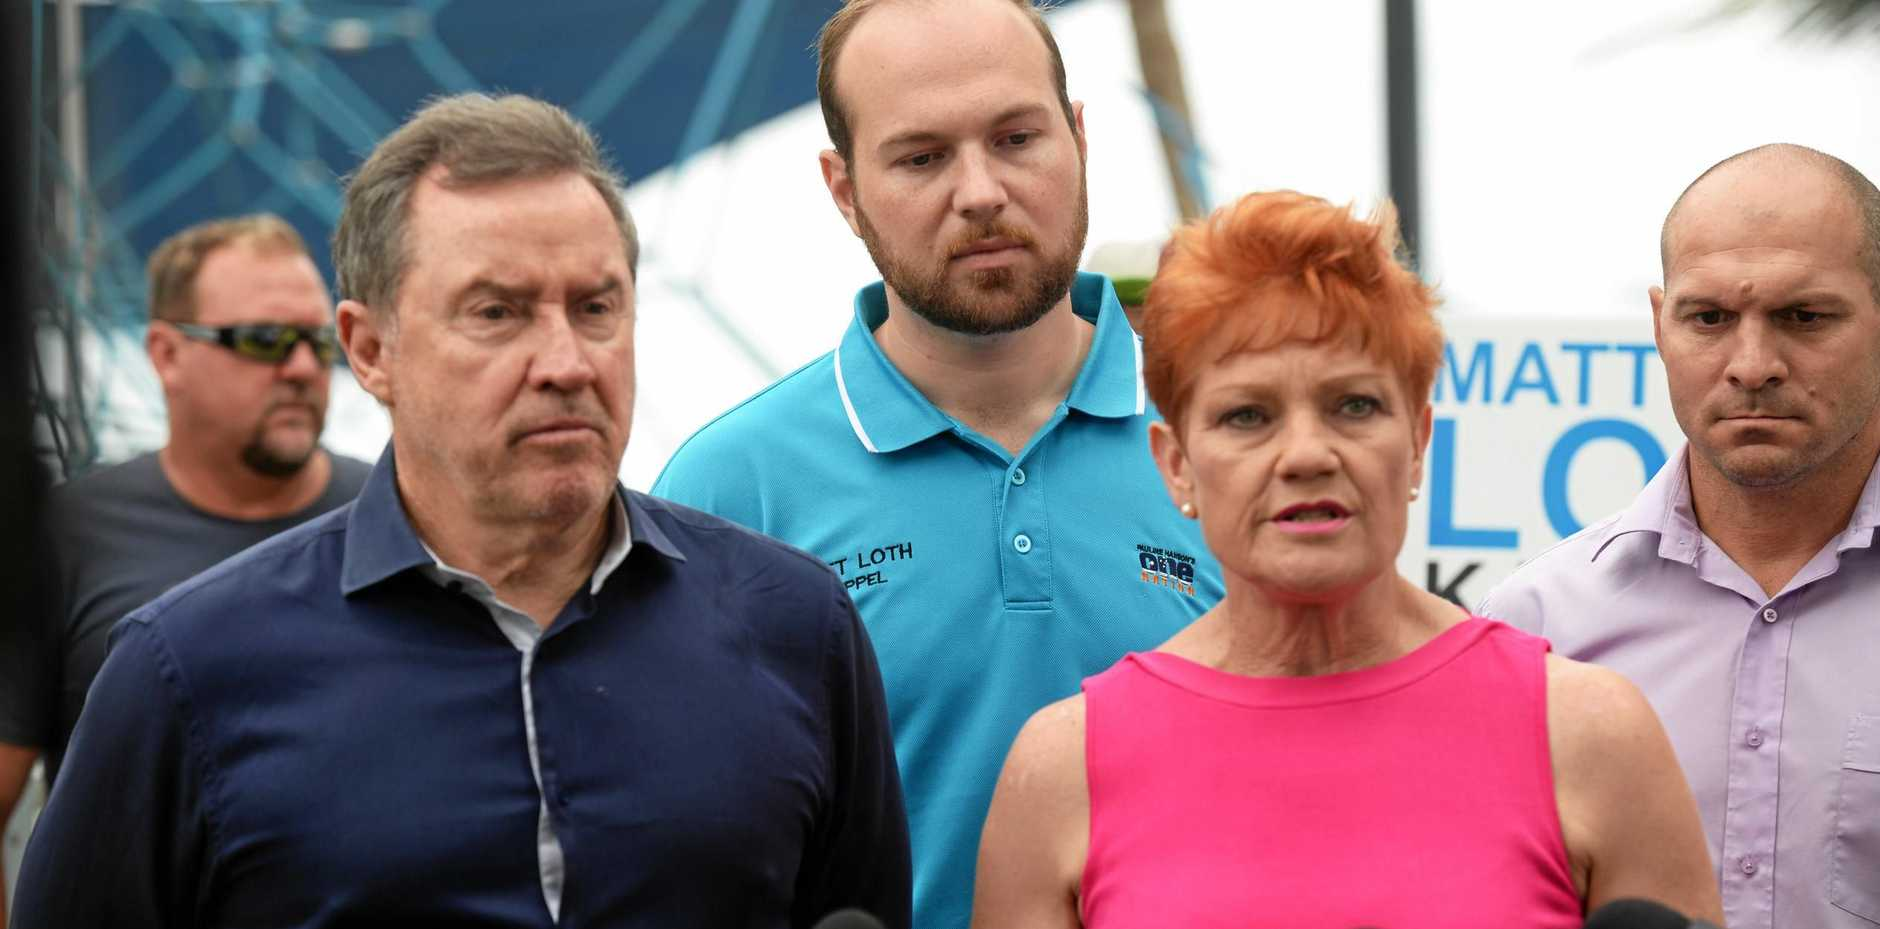 Pauline Hanson addresses media in Yeppoon. Ms Hanson is flanked by, from left, Terry Agnew, of Tower Holdings, One Nation Keppel candidate Matt Loth and One Nation Rockhampton candidate Wade Rothery.